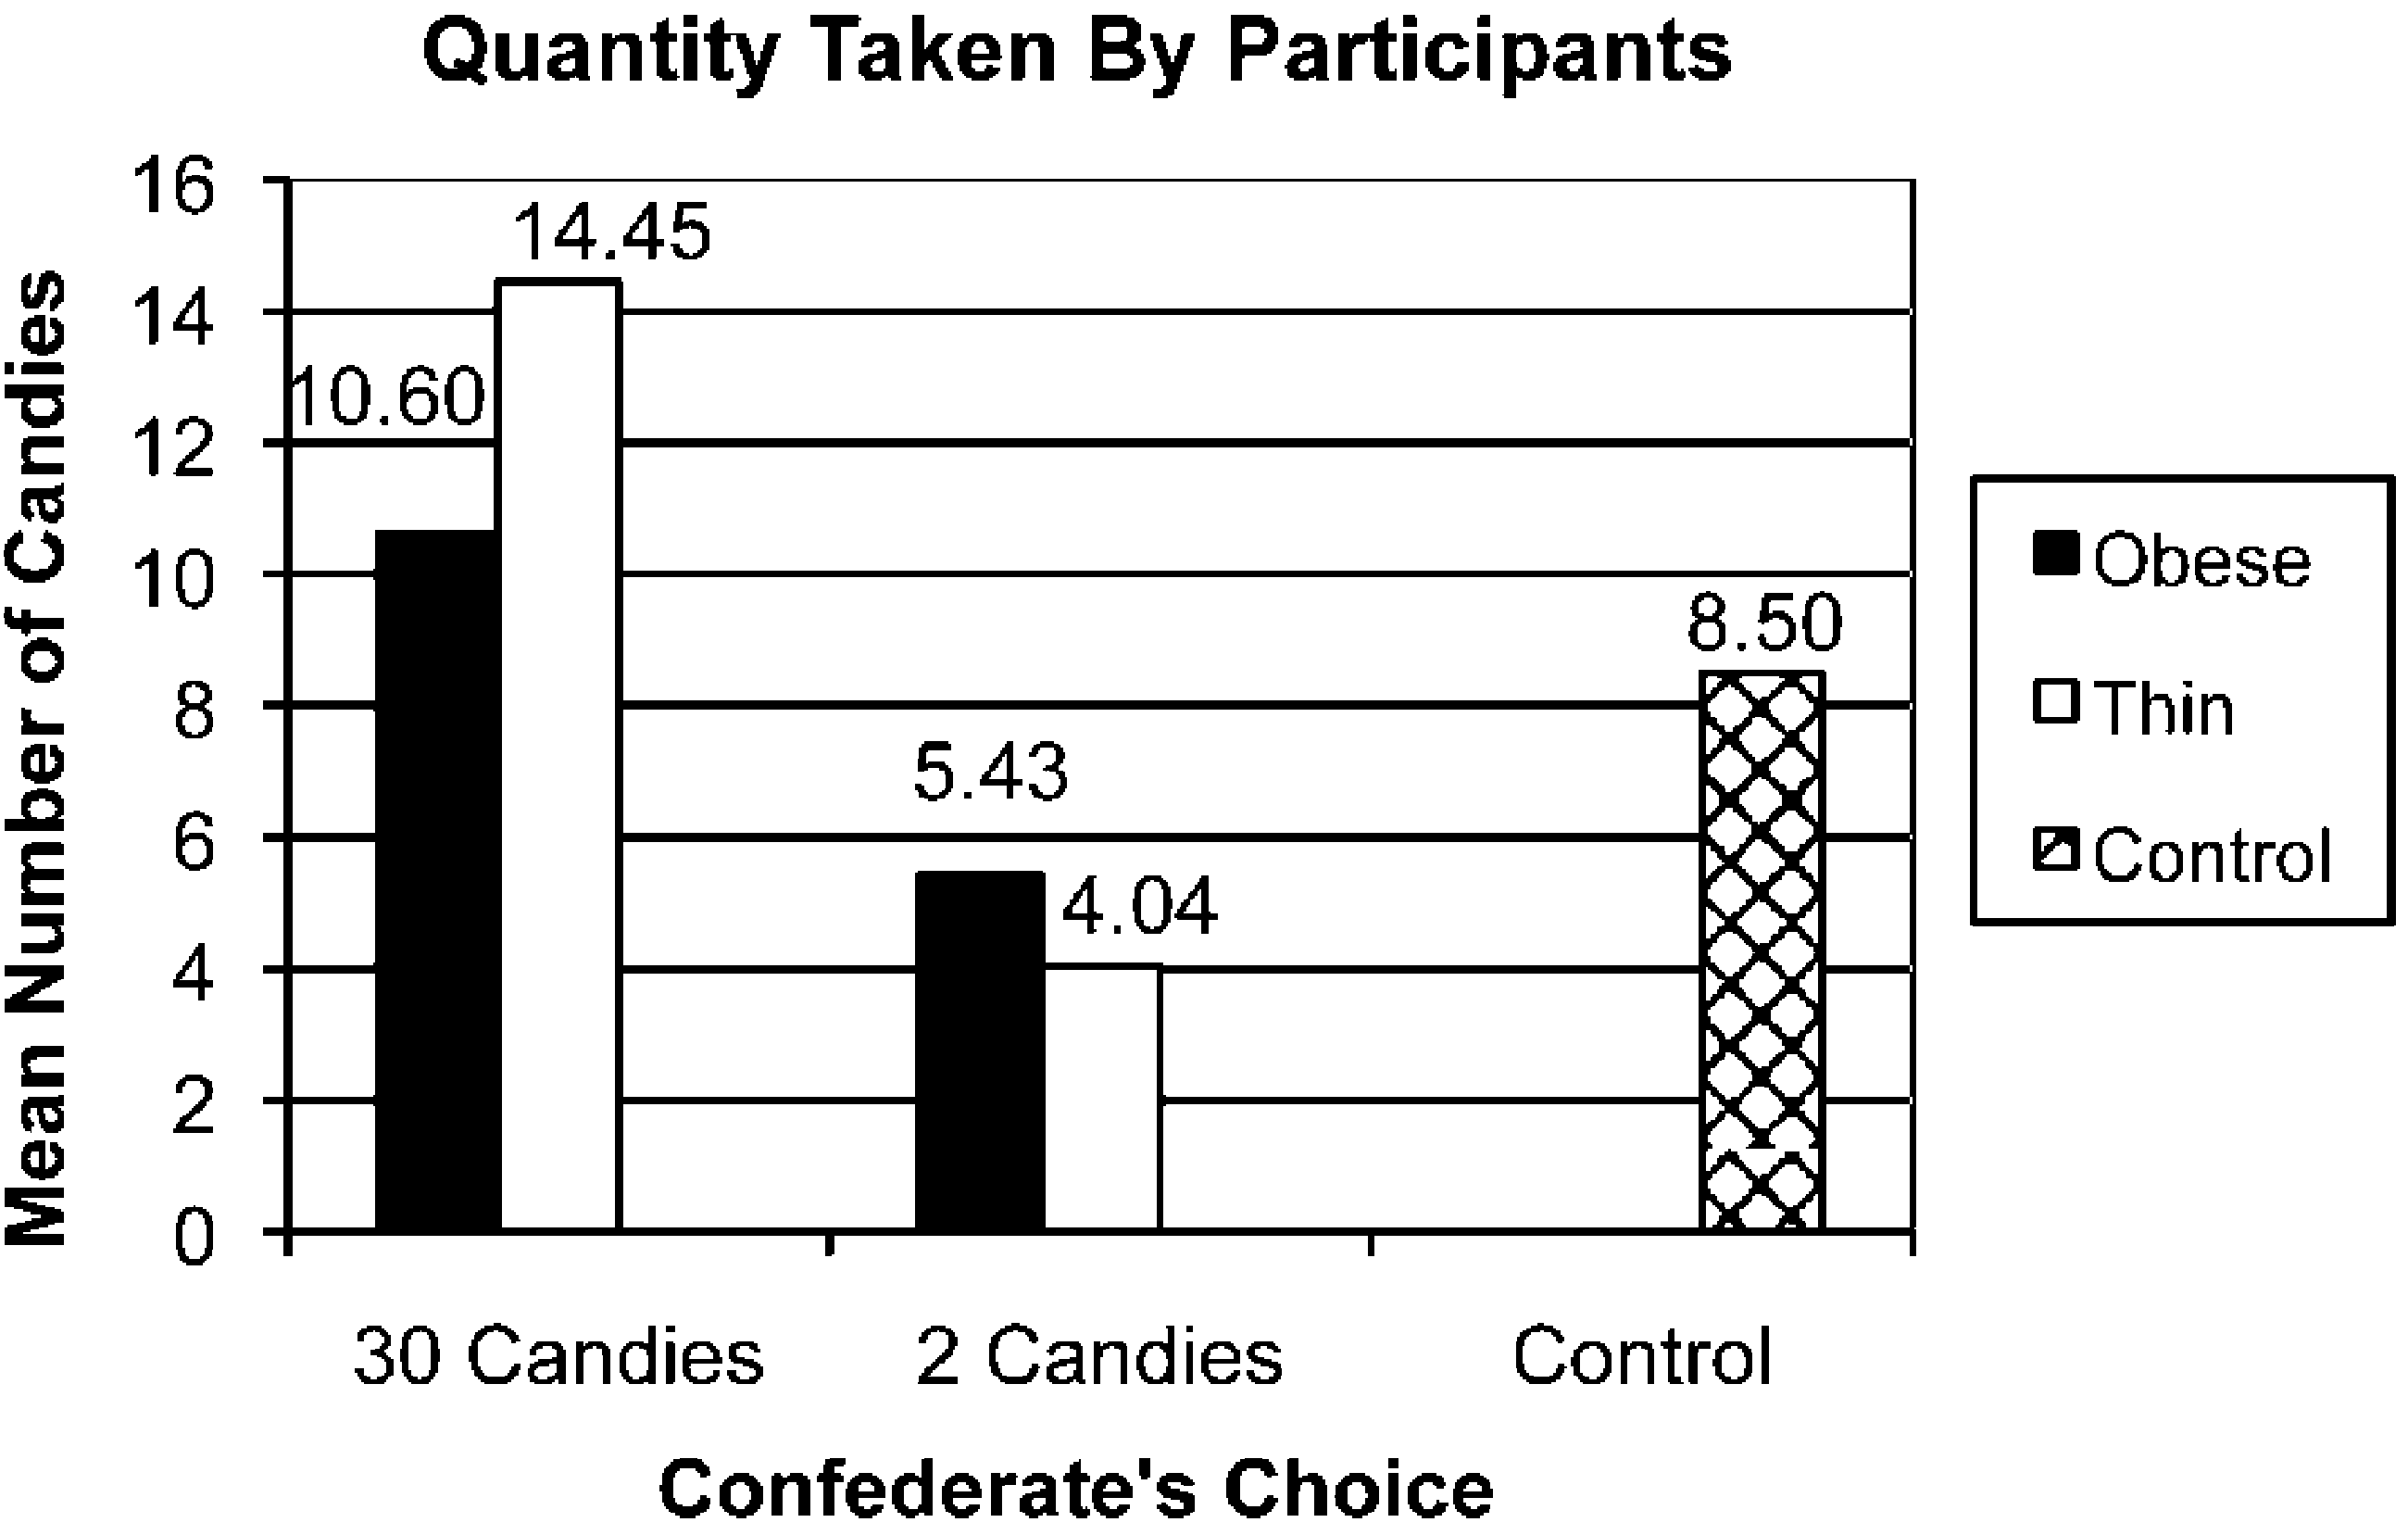 An ANCOVA on participants actual consumption revealed an identical pattern as their choice behavior. The main effect for amount taken by the confederate was again significant (F(1, 84) p 22.18, p!